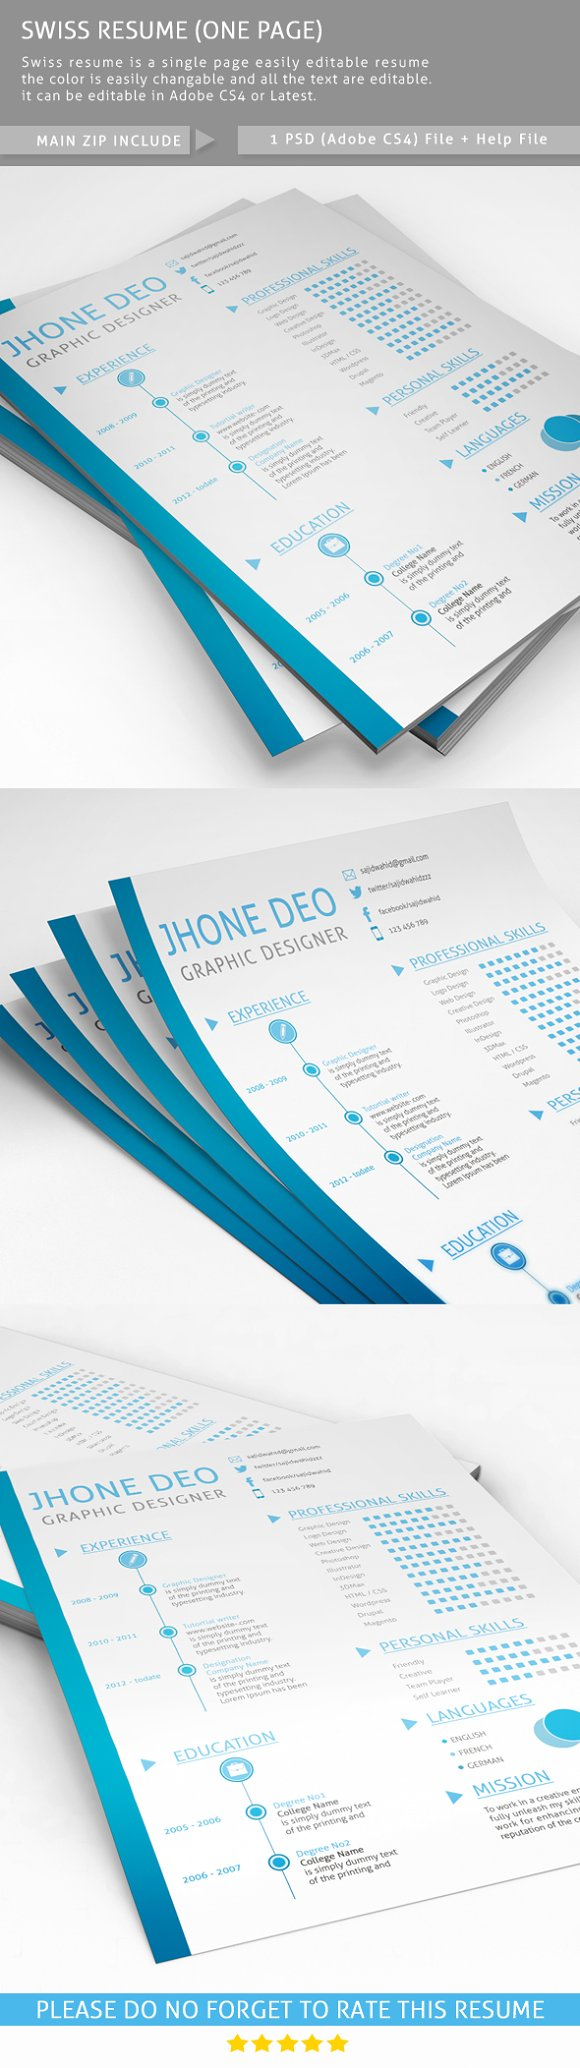 swiss resume one page resume templates on creative market